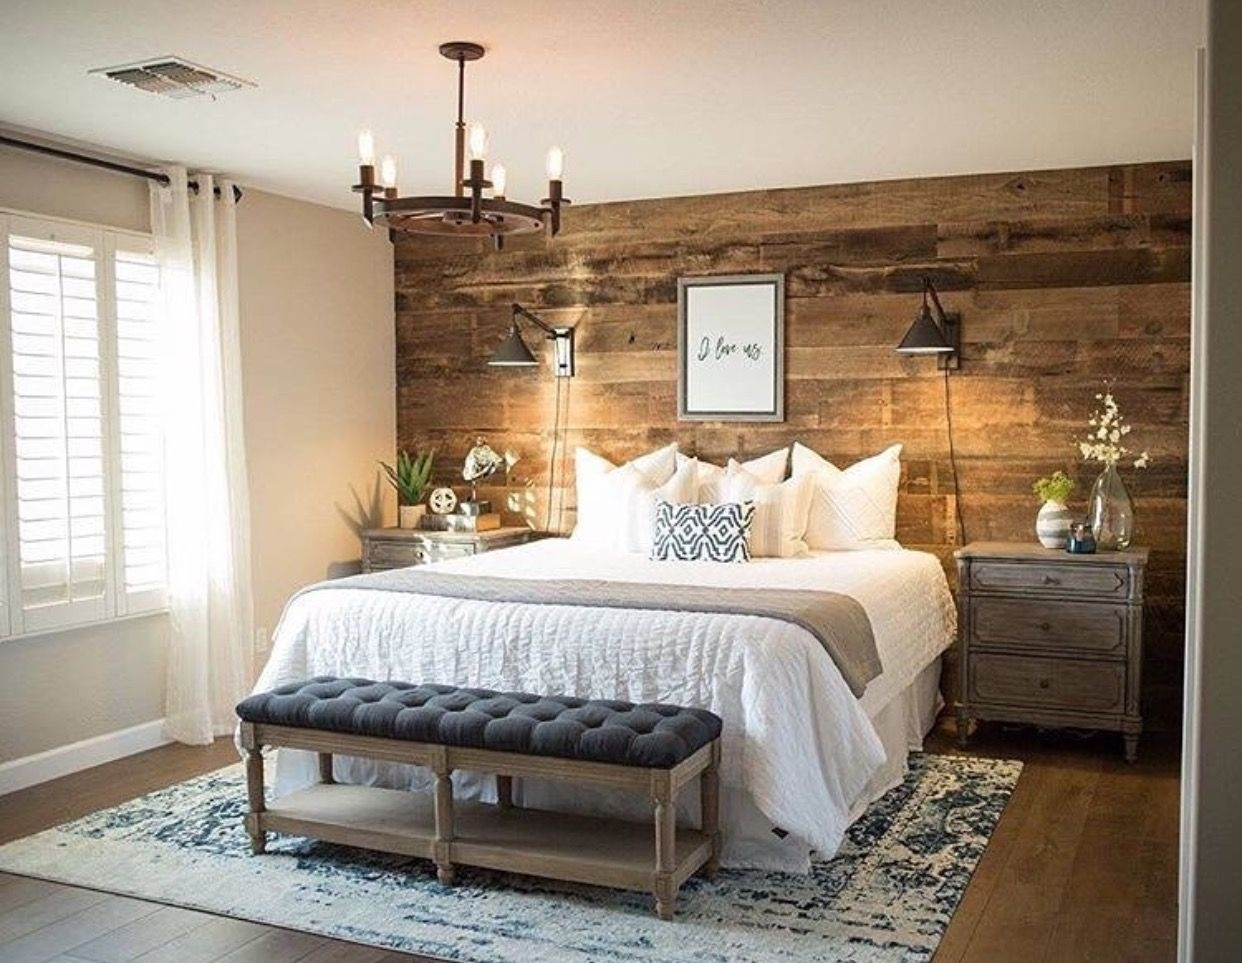 Pinamy Harbaugh On Bedroom Ideas | Pinterest | Walls, Bedrooms intended for Most Up-to-Date Earth Tones Wall Accents